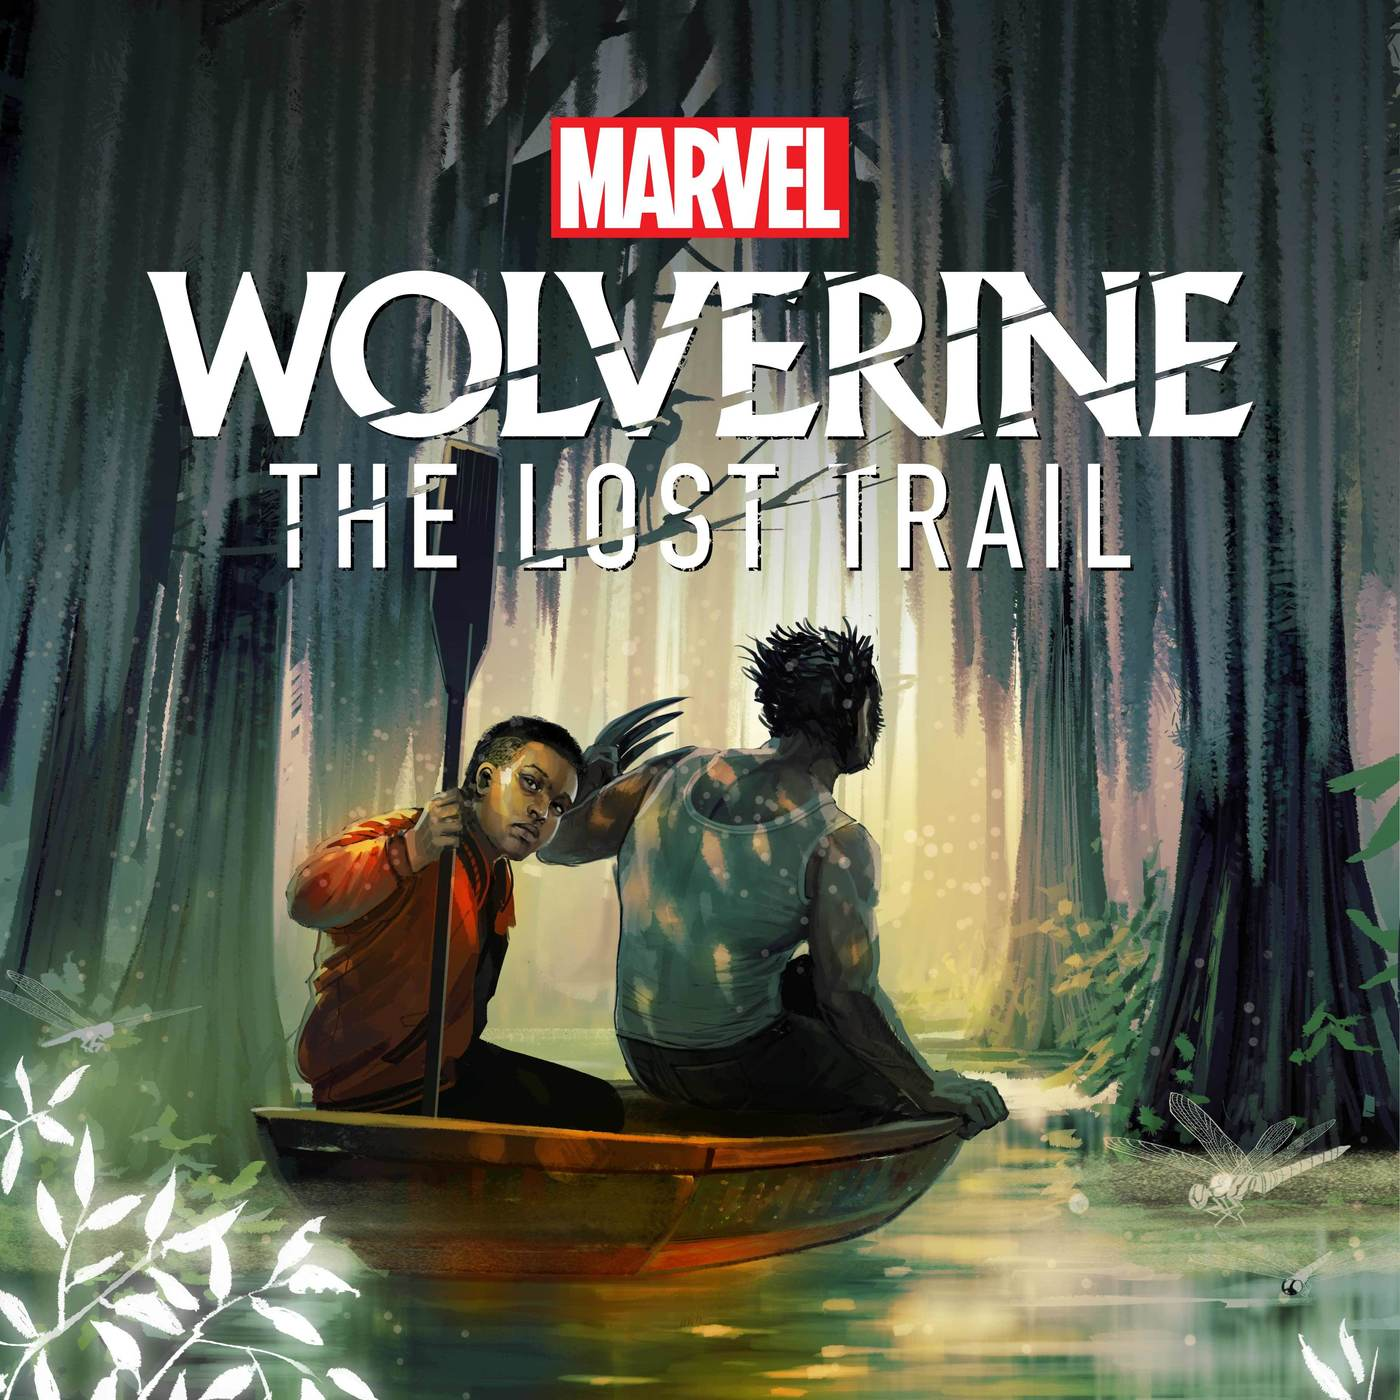 Marvel's Wolverine Podcast